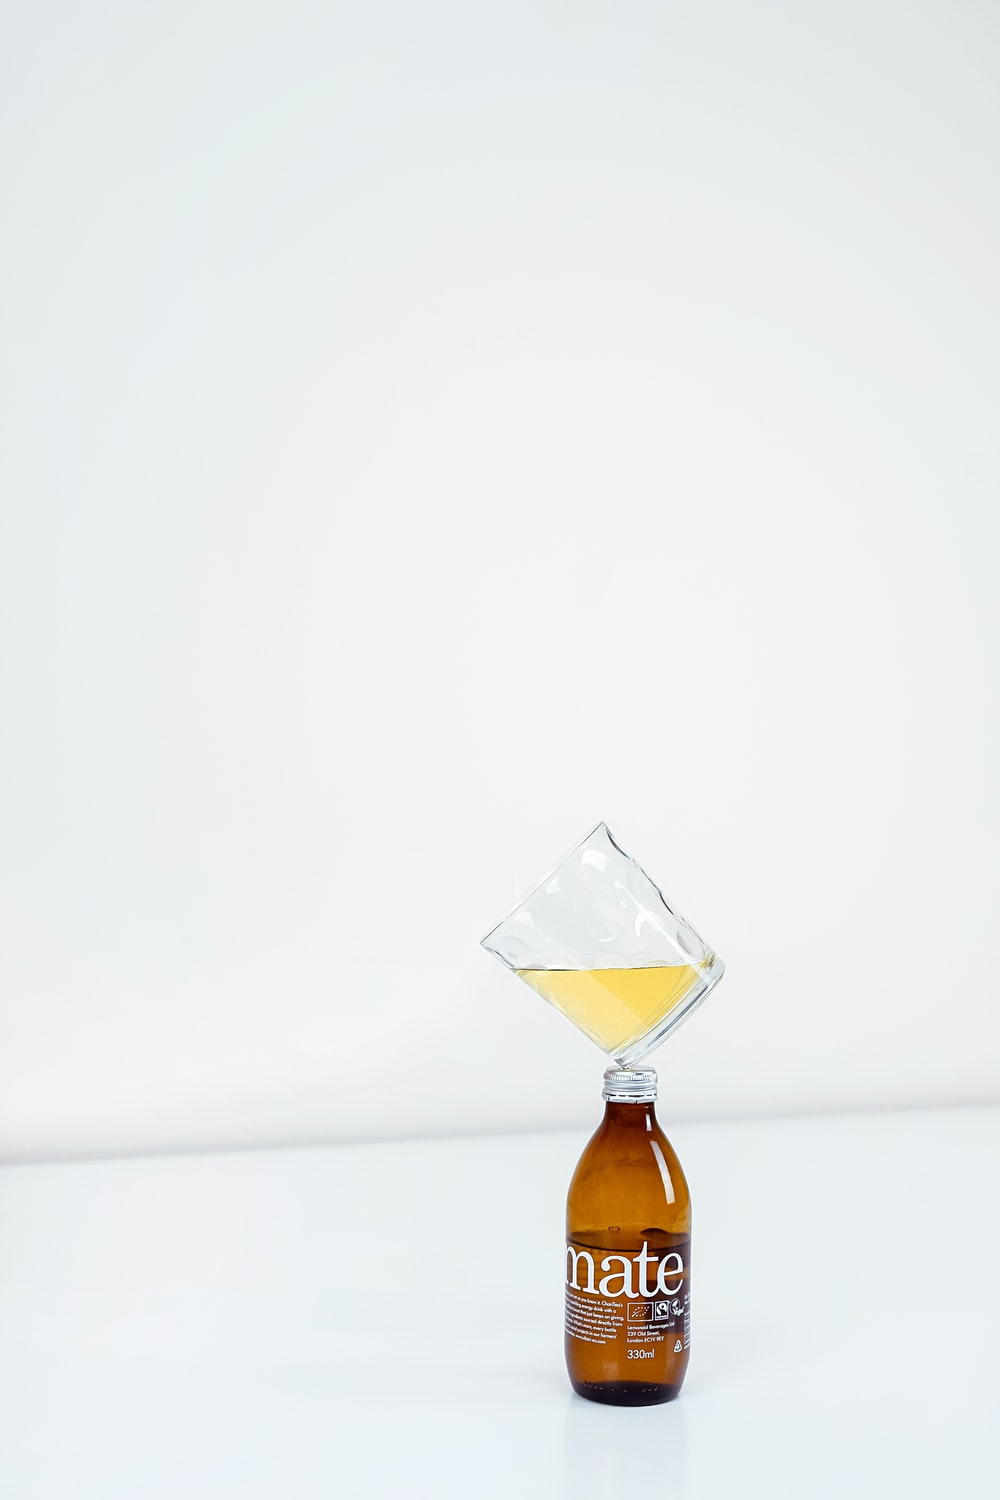 1/4 full clear drinking glass on top of amber bottle